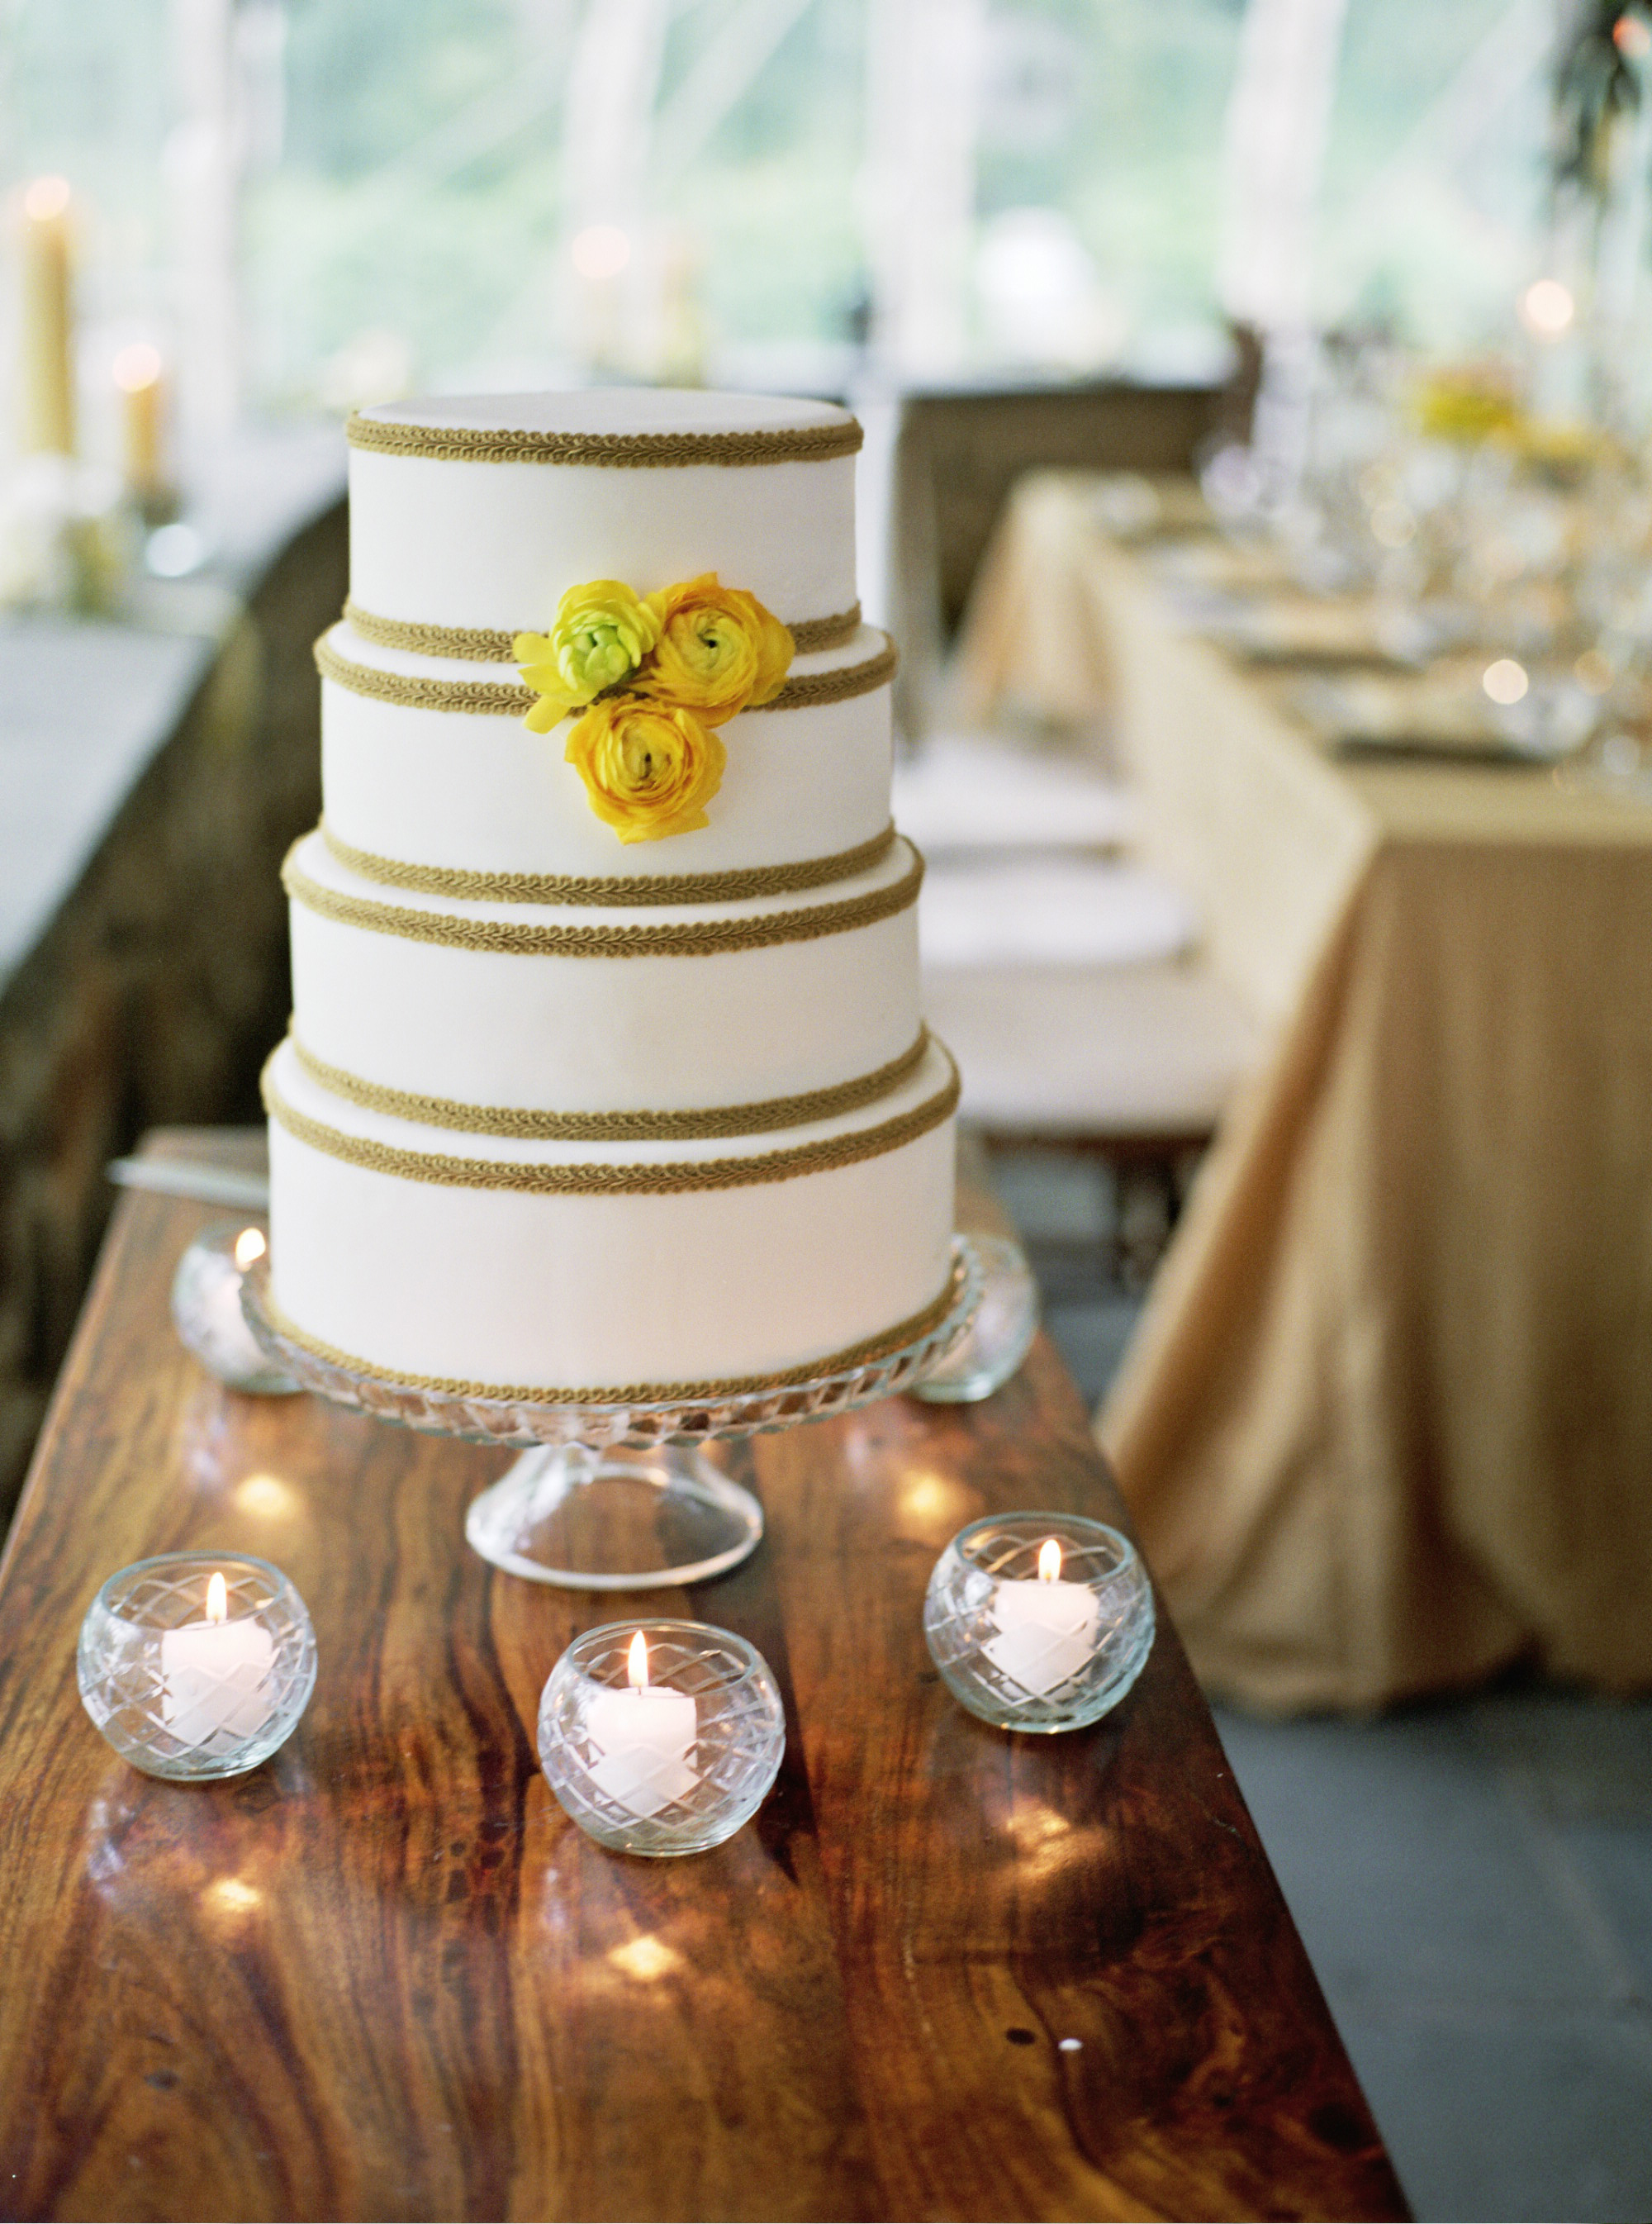 WE LOVE Wedding Cakes by Truli Confectionary Arts